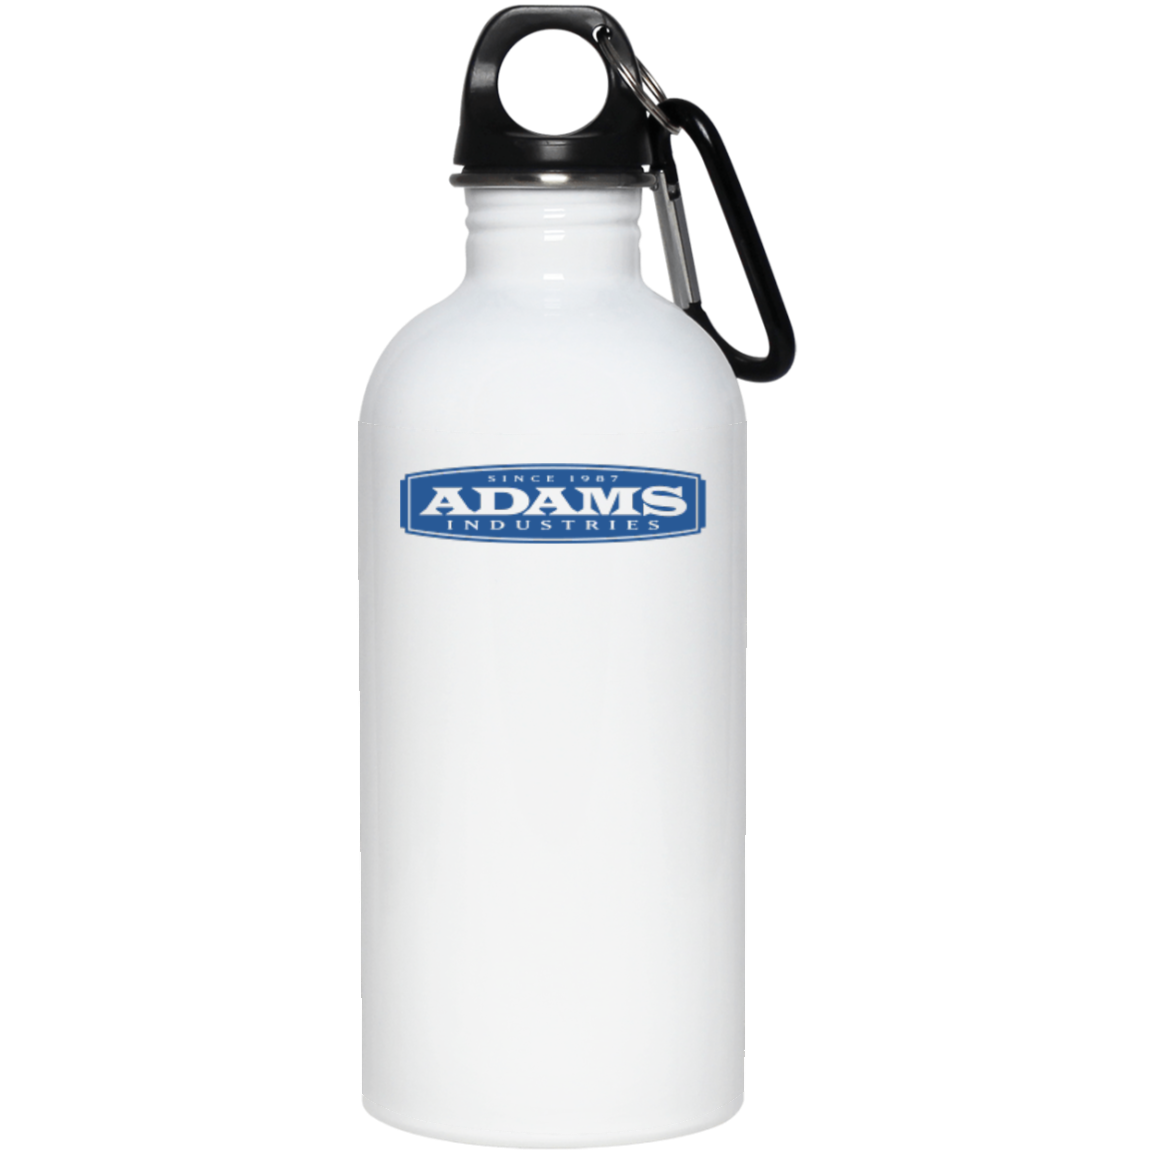 Adams 20 oz. Stainless Steel Water Bottle